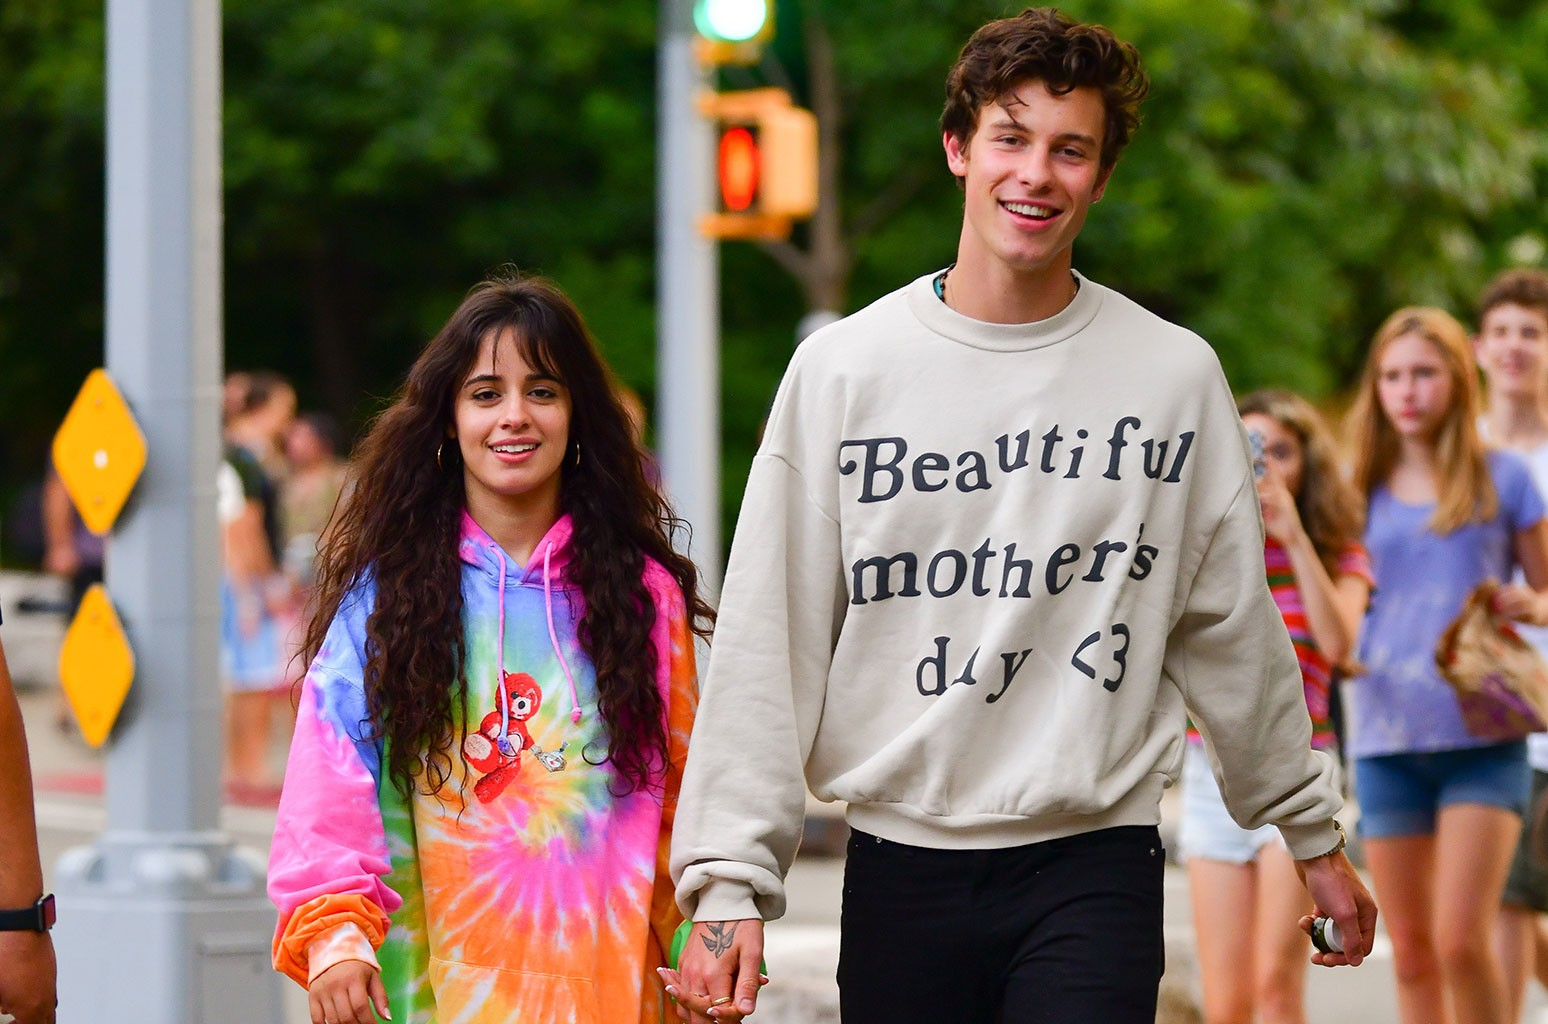 Shawn Mendes and Camila Cabello Kiss For the Camera in Epic New Video:  Watch